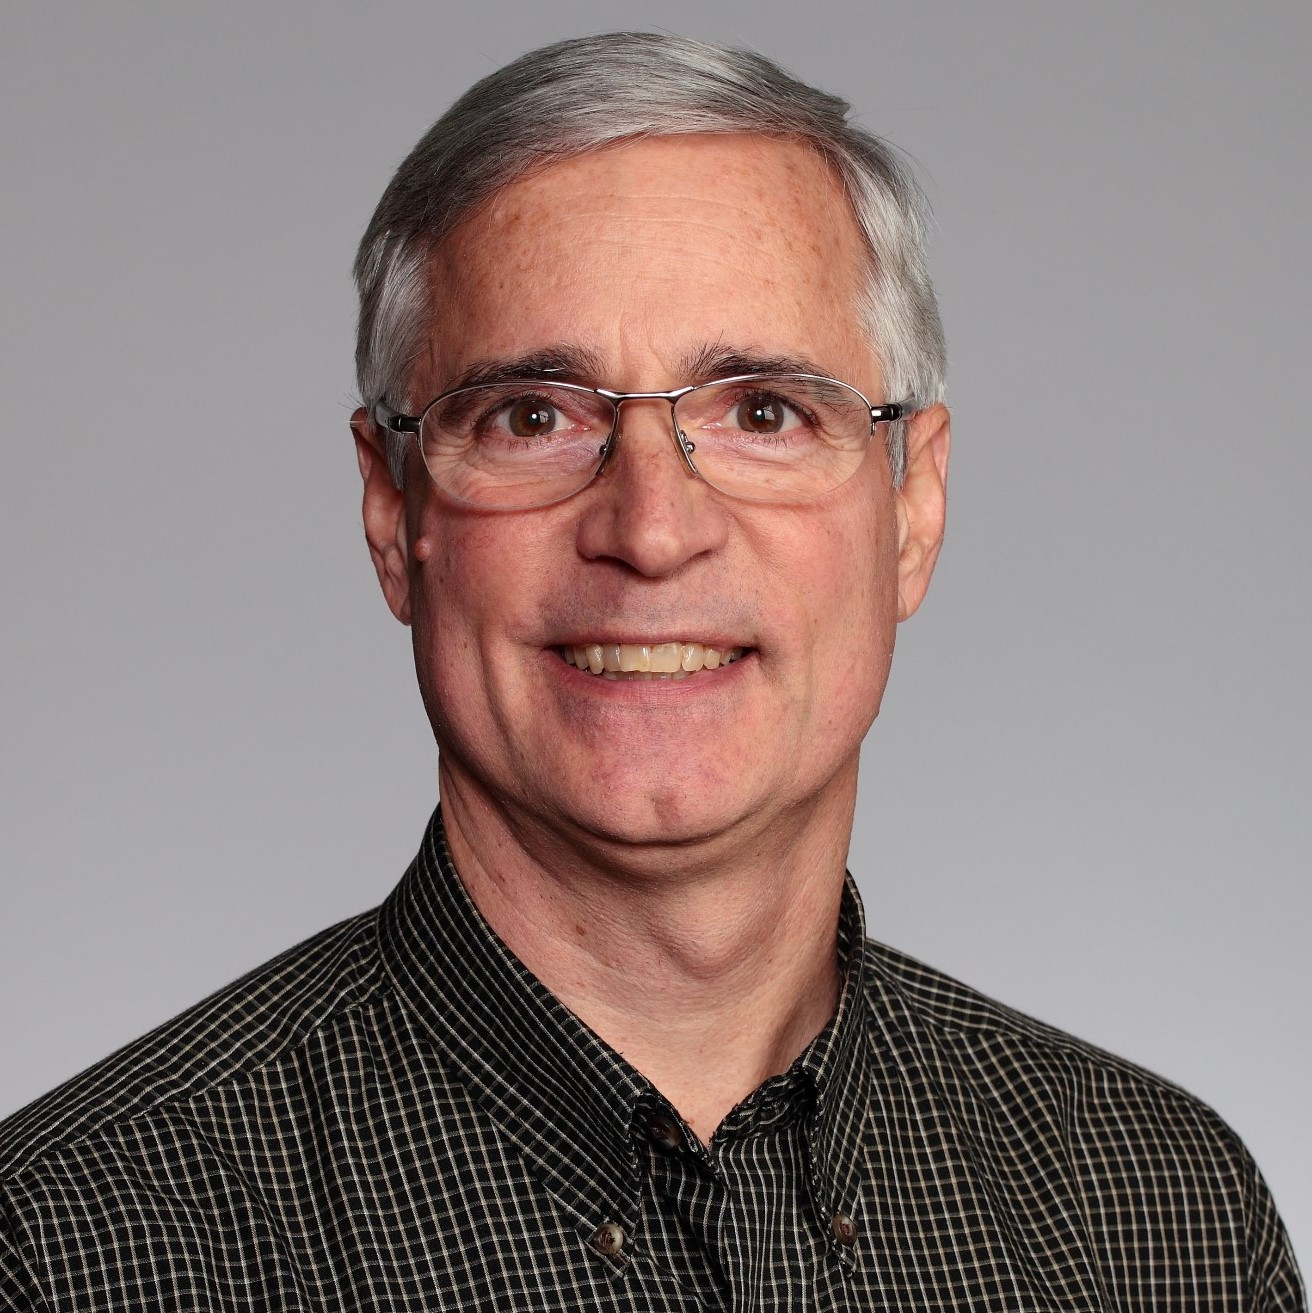 Bob Lacatena, Senior Software Architect